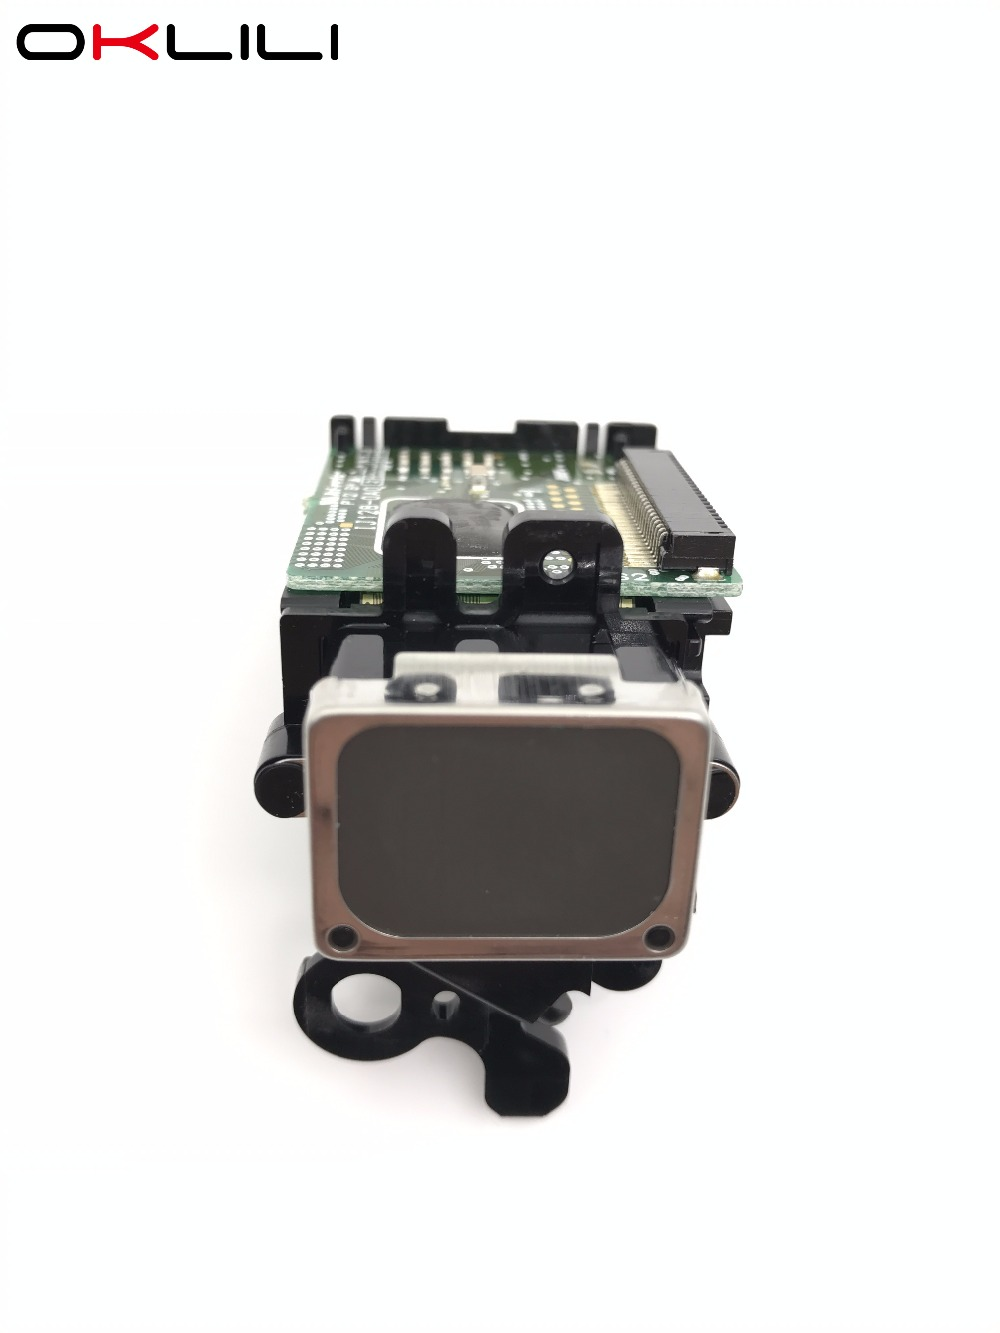 F056030 F056010 BLACK Printhead Printer Print Head for Epson DX2 Color 1520 1520K 3000 800 800N PRO 5000 7000 7500 9500 9000 сарафаны для новоржденных